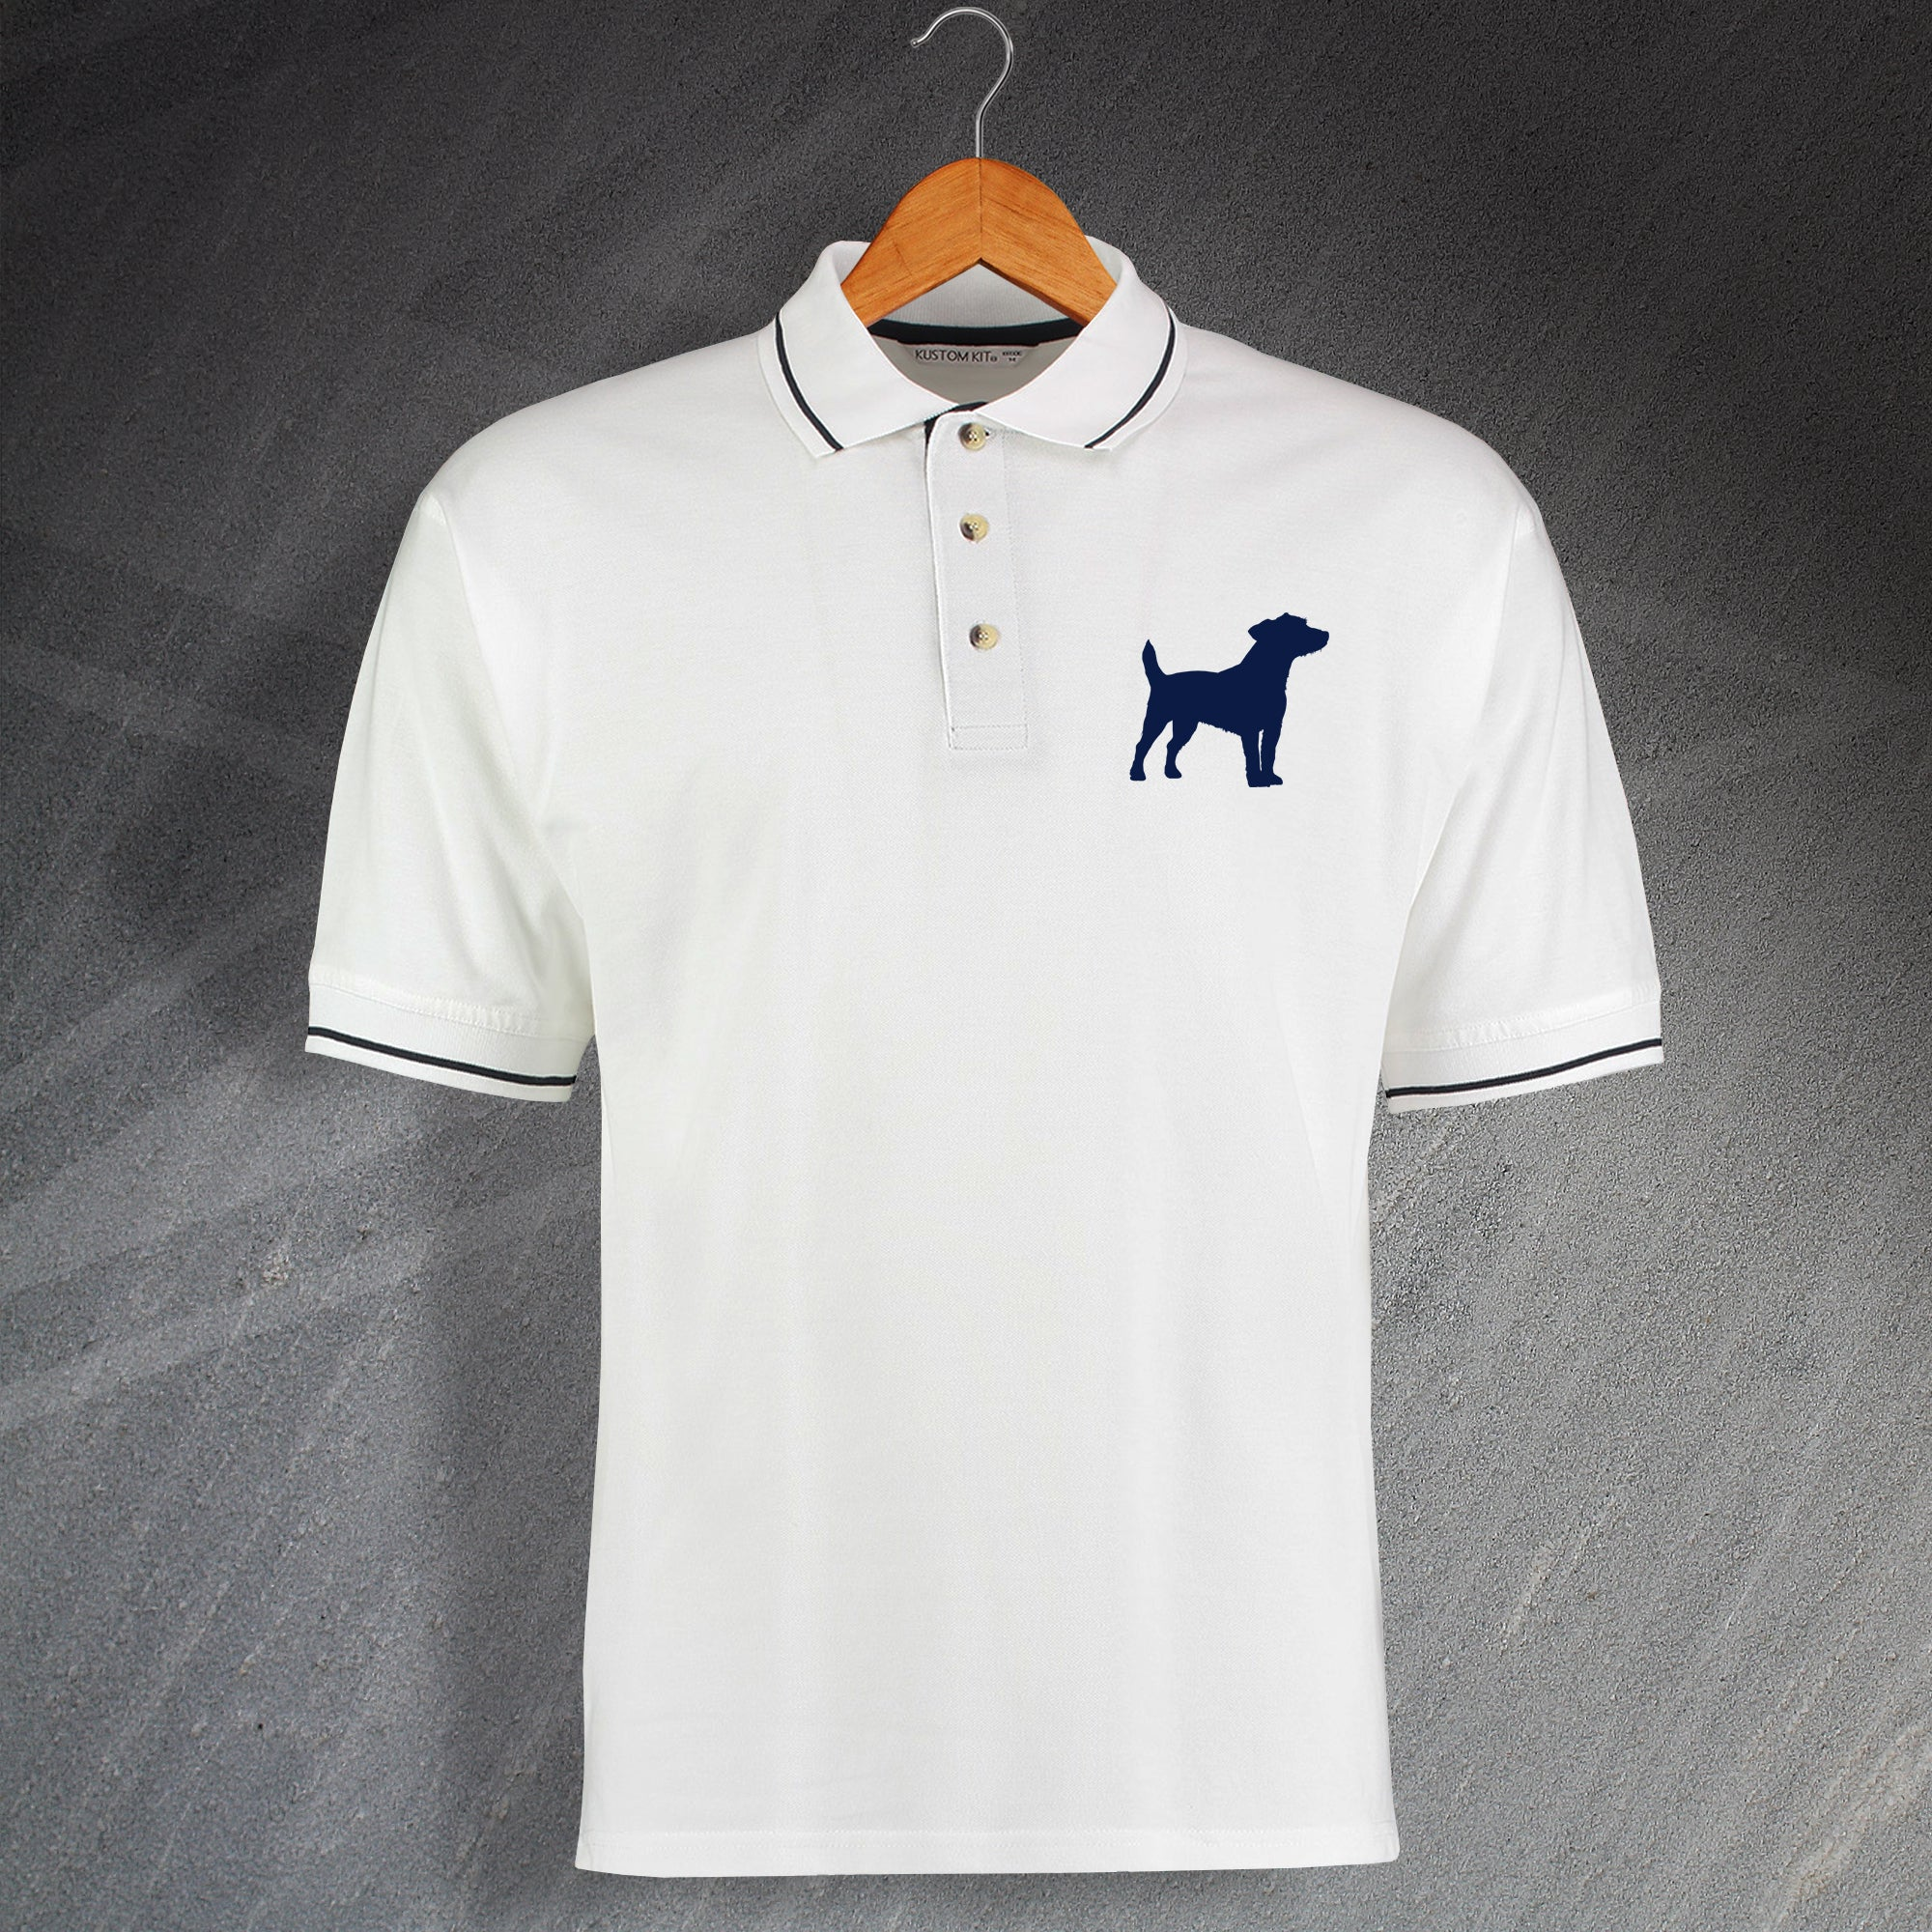 30120546 Jack Russell Terrier Polo Shirt | Jack Russell Gifts for Dog Owners ...